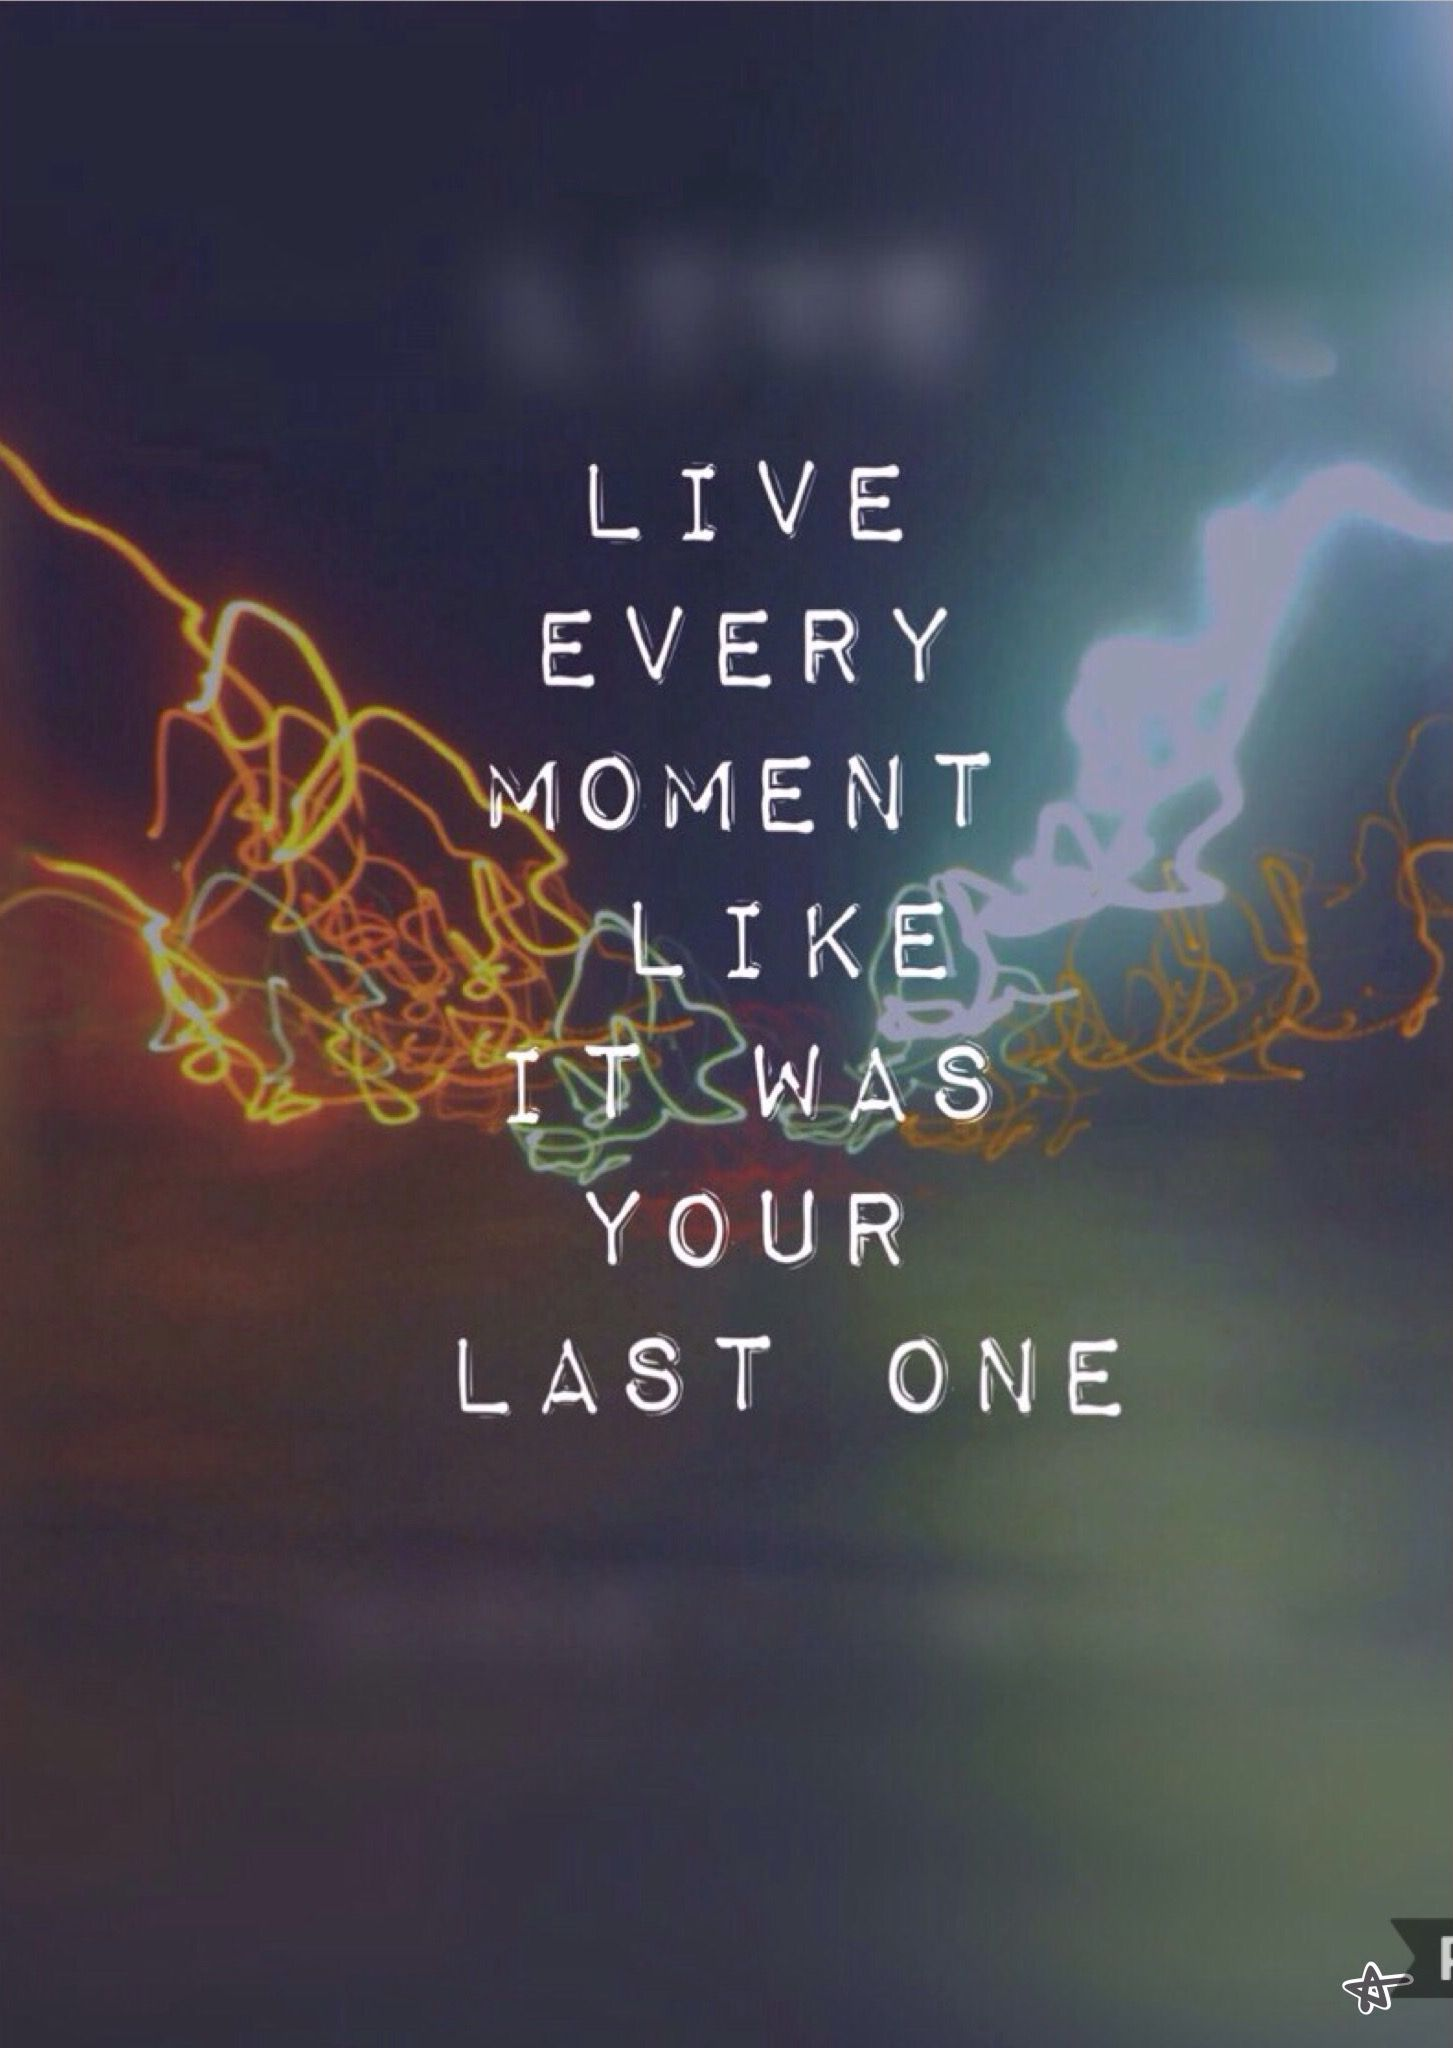 Live every second like it was your last one   #quotes #life #love #melanie Estrella